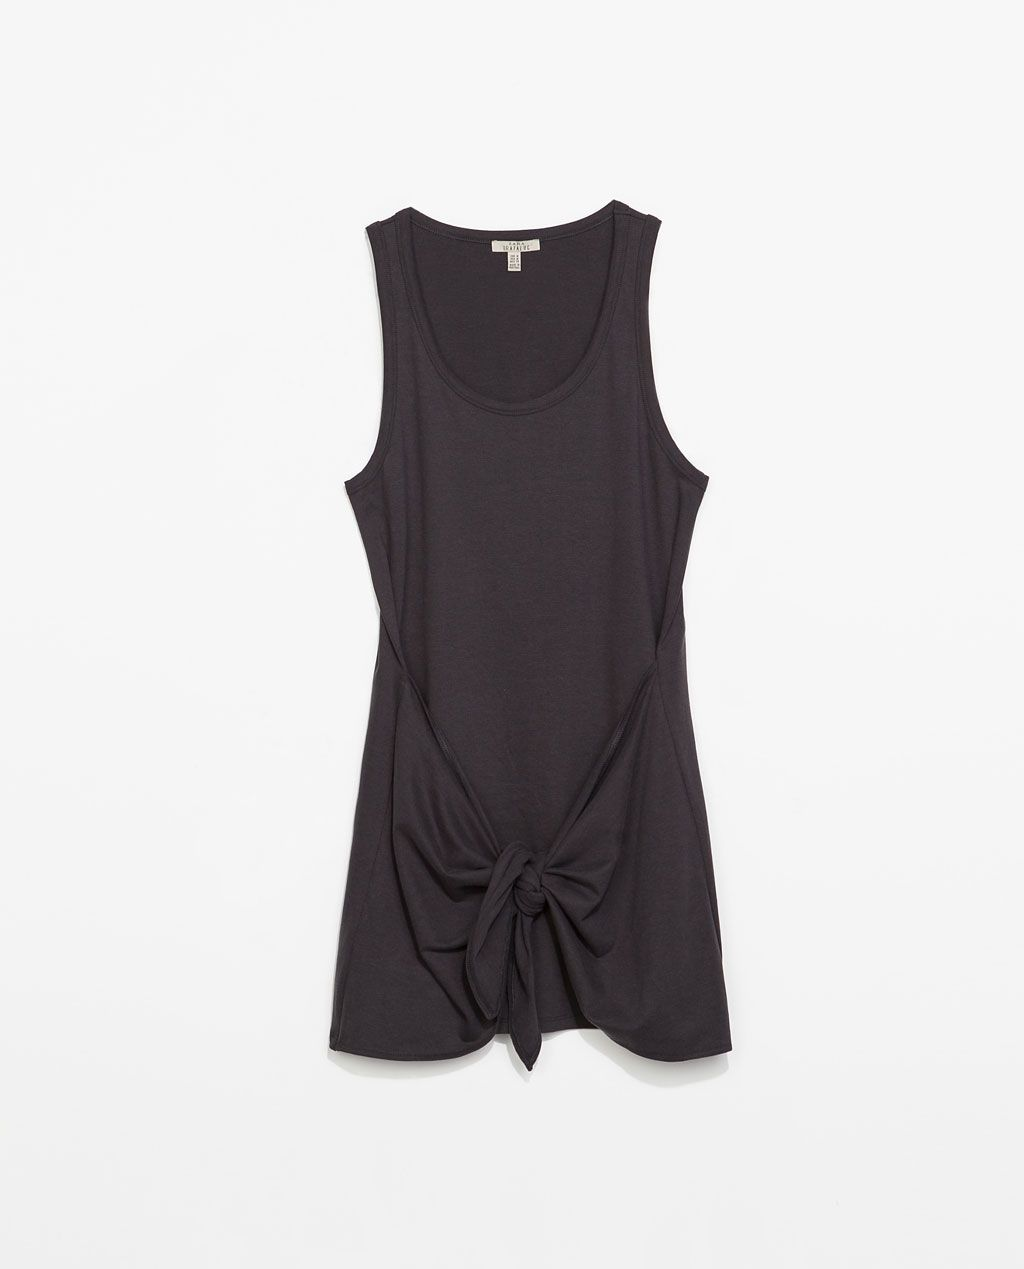 Zara trf dress with knot detail objects of desire